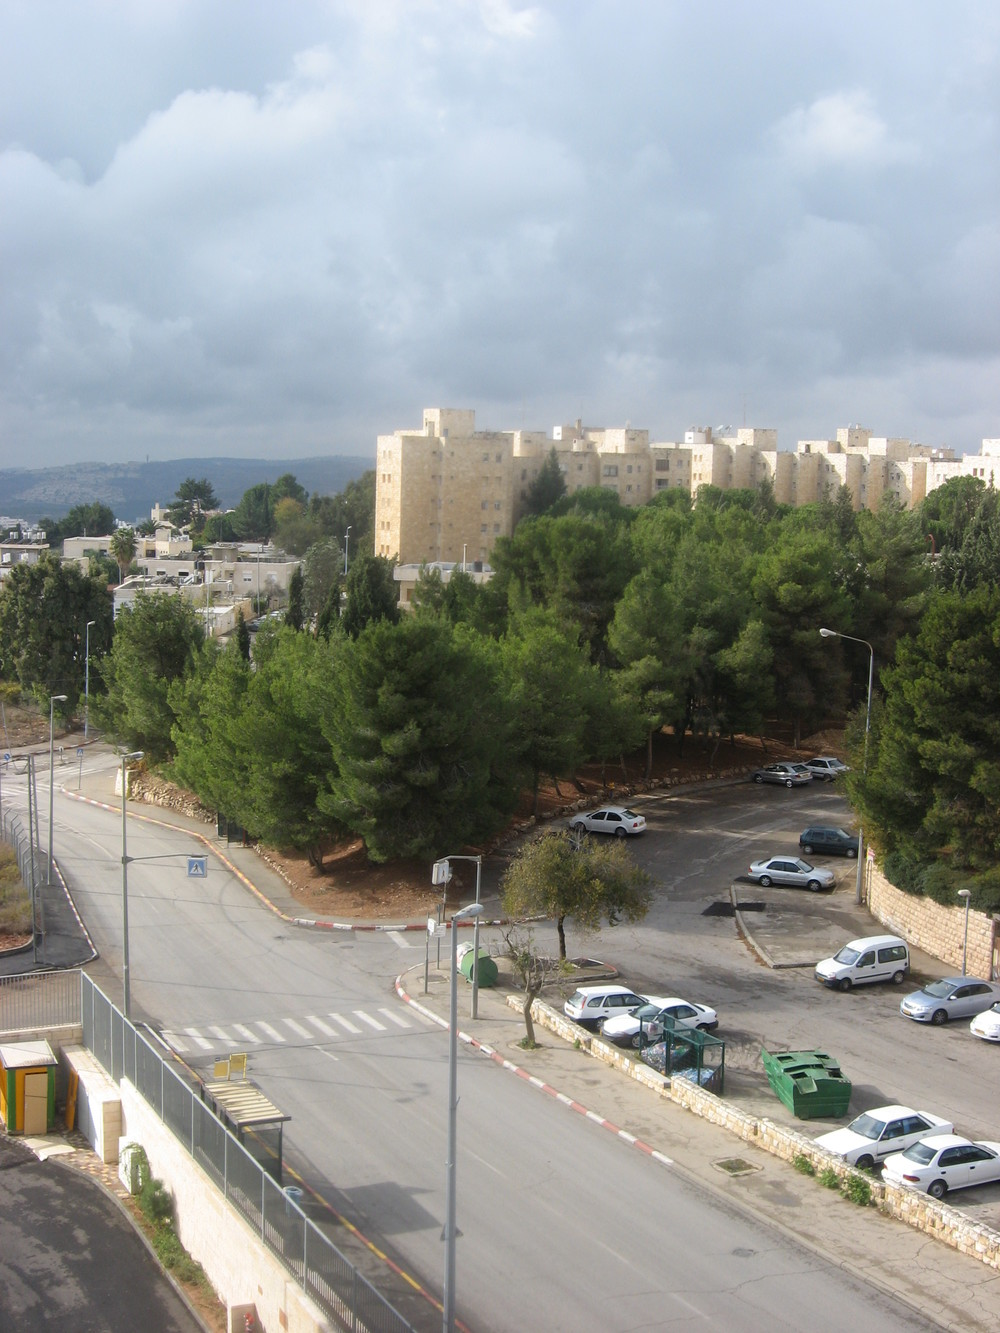 Jerusalem's French Hill neighborhood, where Arab youths stoned an Israeli man's car on Tuesday. Credit: Rotem Danzig via Wikimedia Commons.